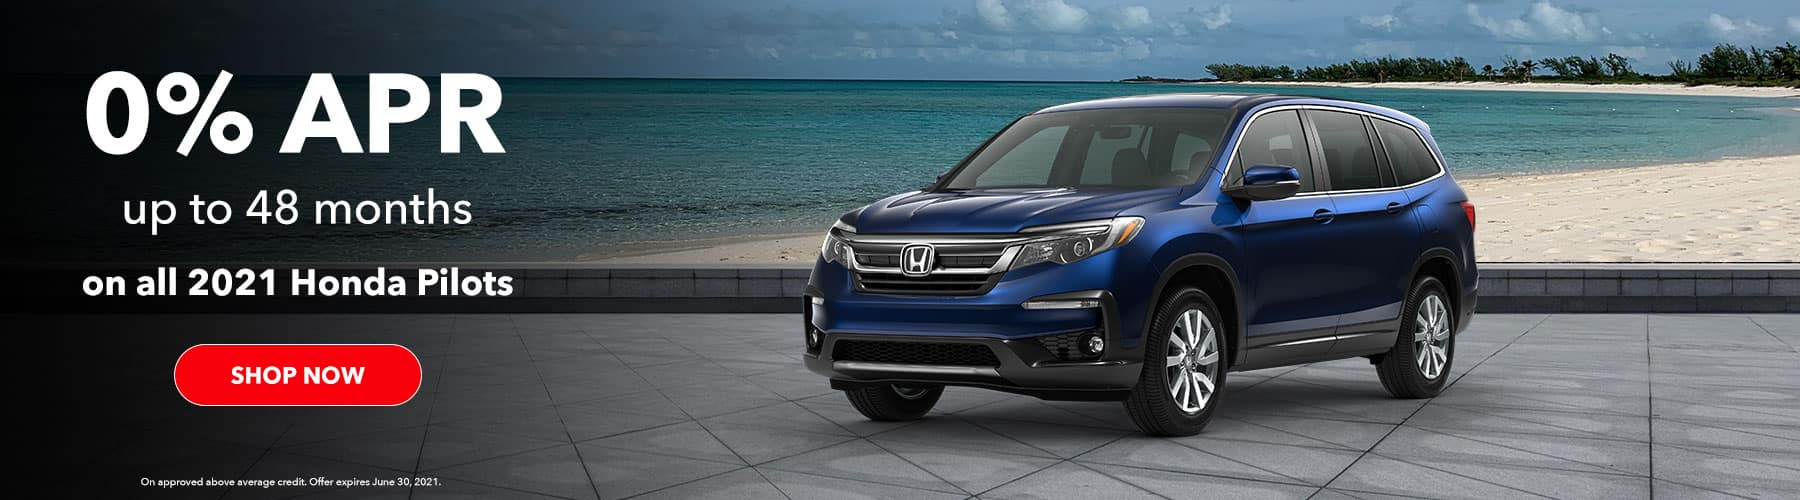 0.0% APR up to 48 months on all 2021 Honda Pilots – On approved above average credit. Offer expires June 30, 2021.